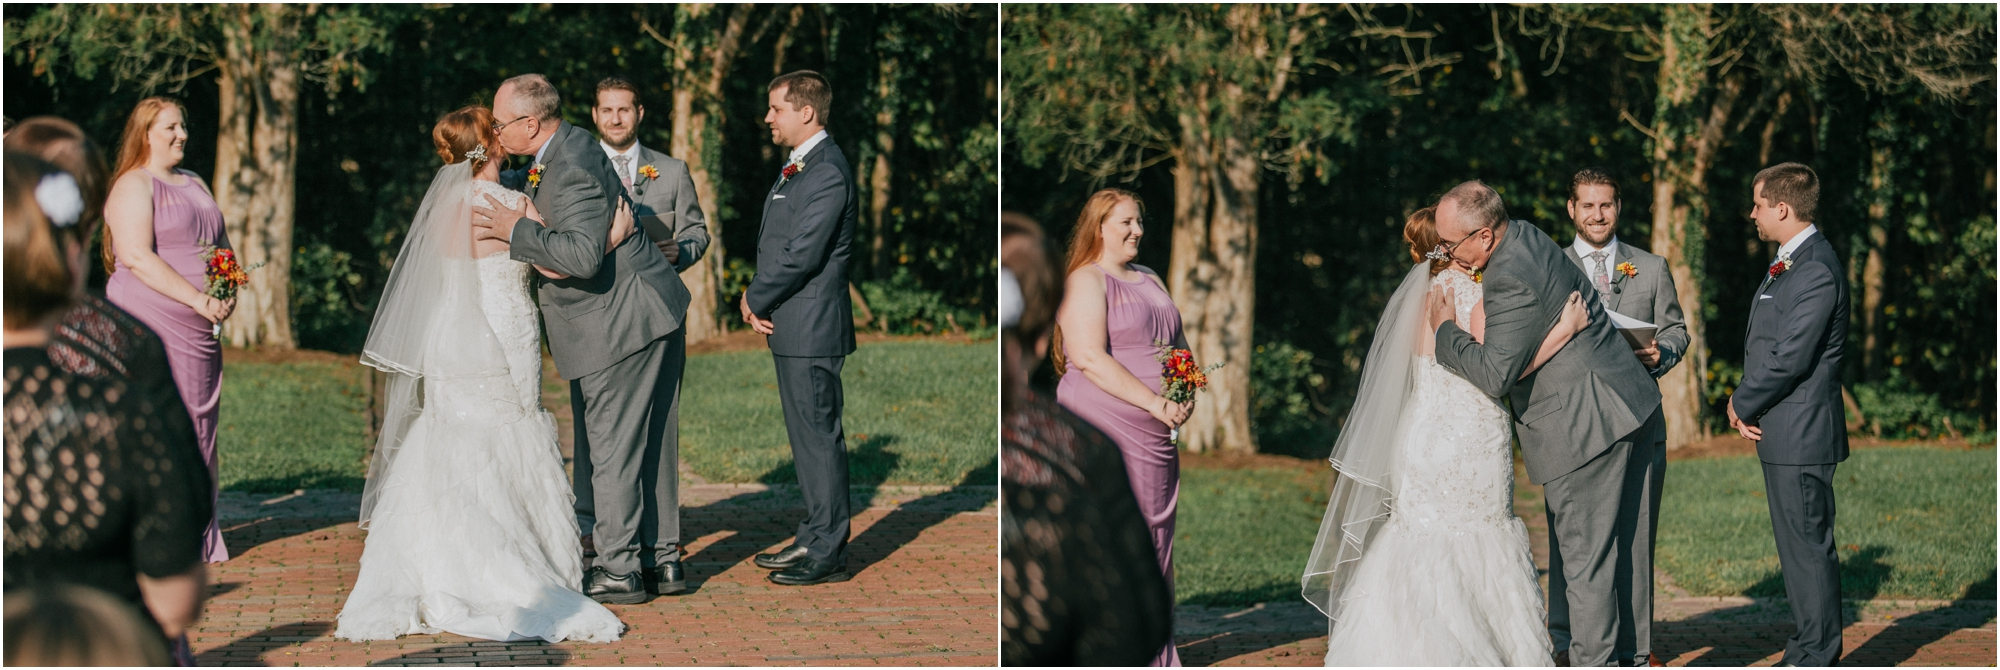 Fall-gem-stone-earthy-succulent-mount-airy-mansion-wedding-tennessee-elopement-photographer_0094.jpg